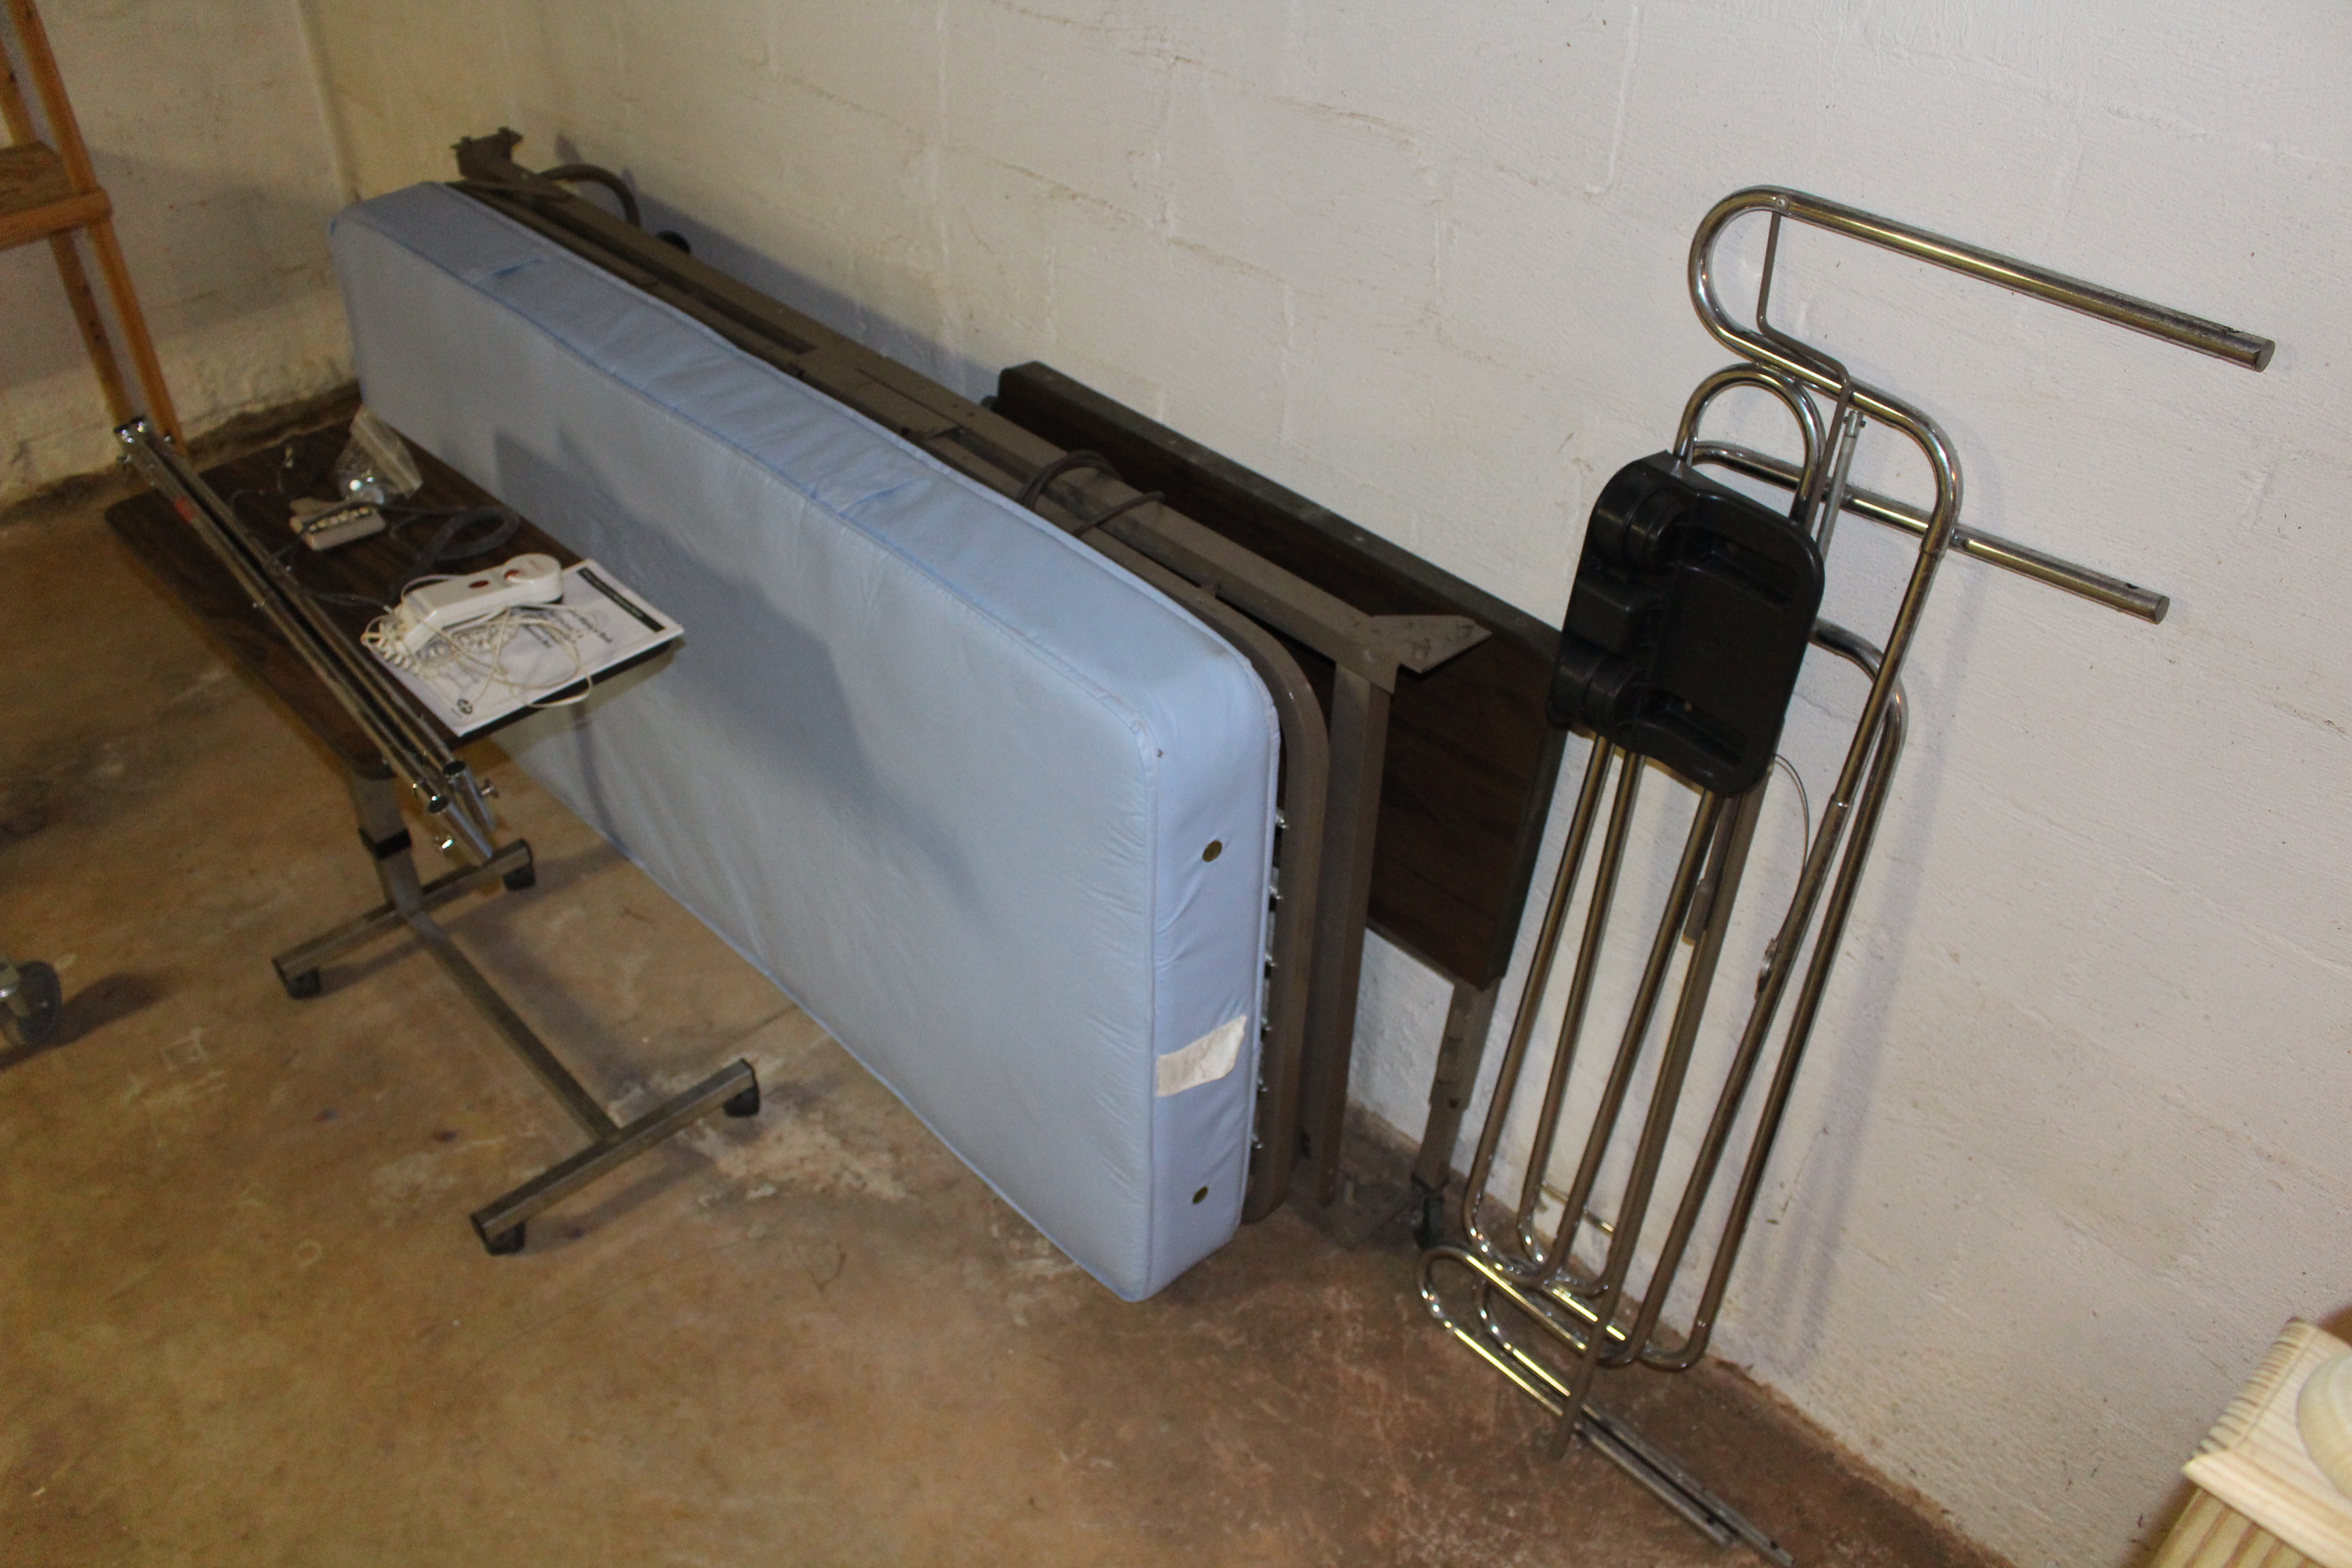 Photo 1 of Electric hospital bed